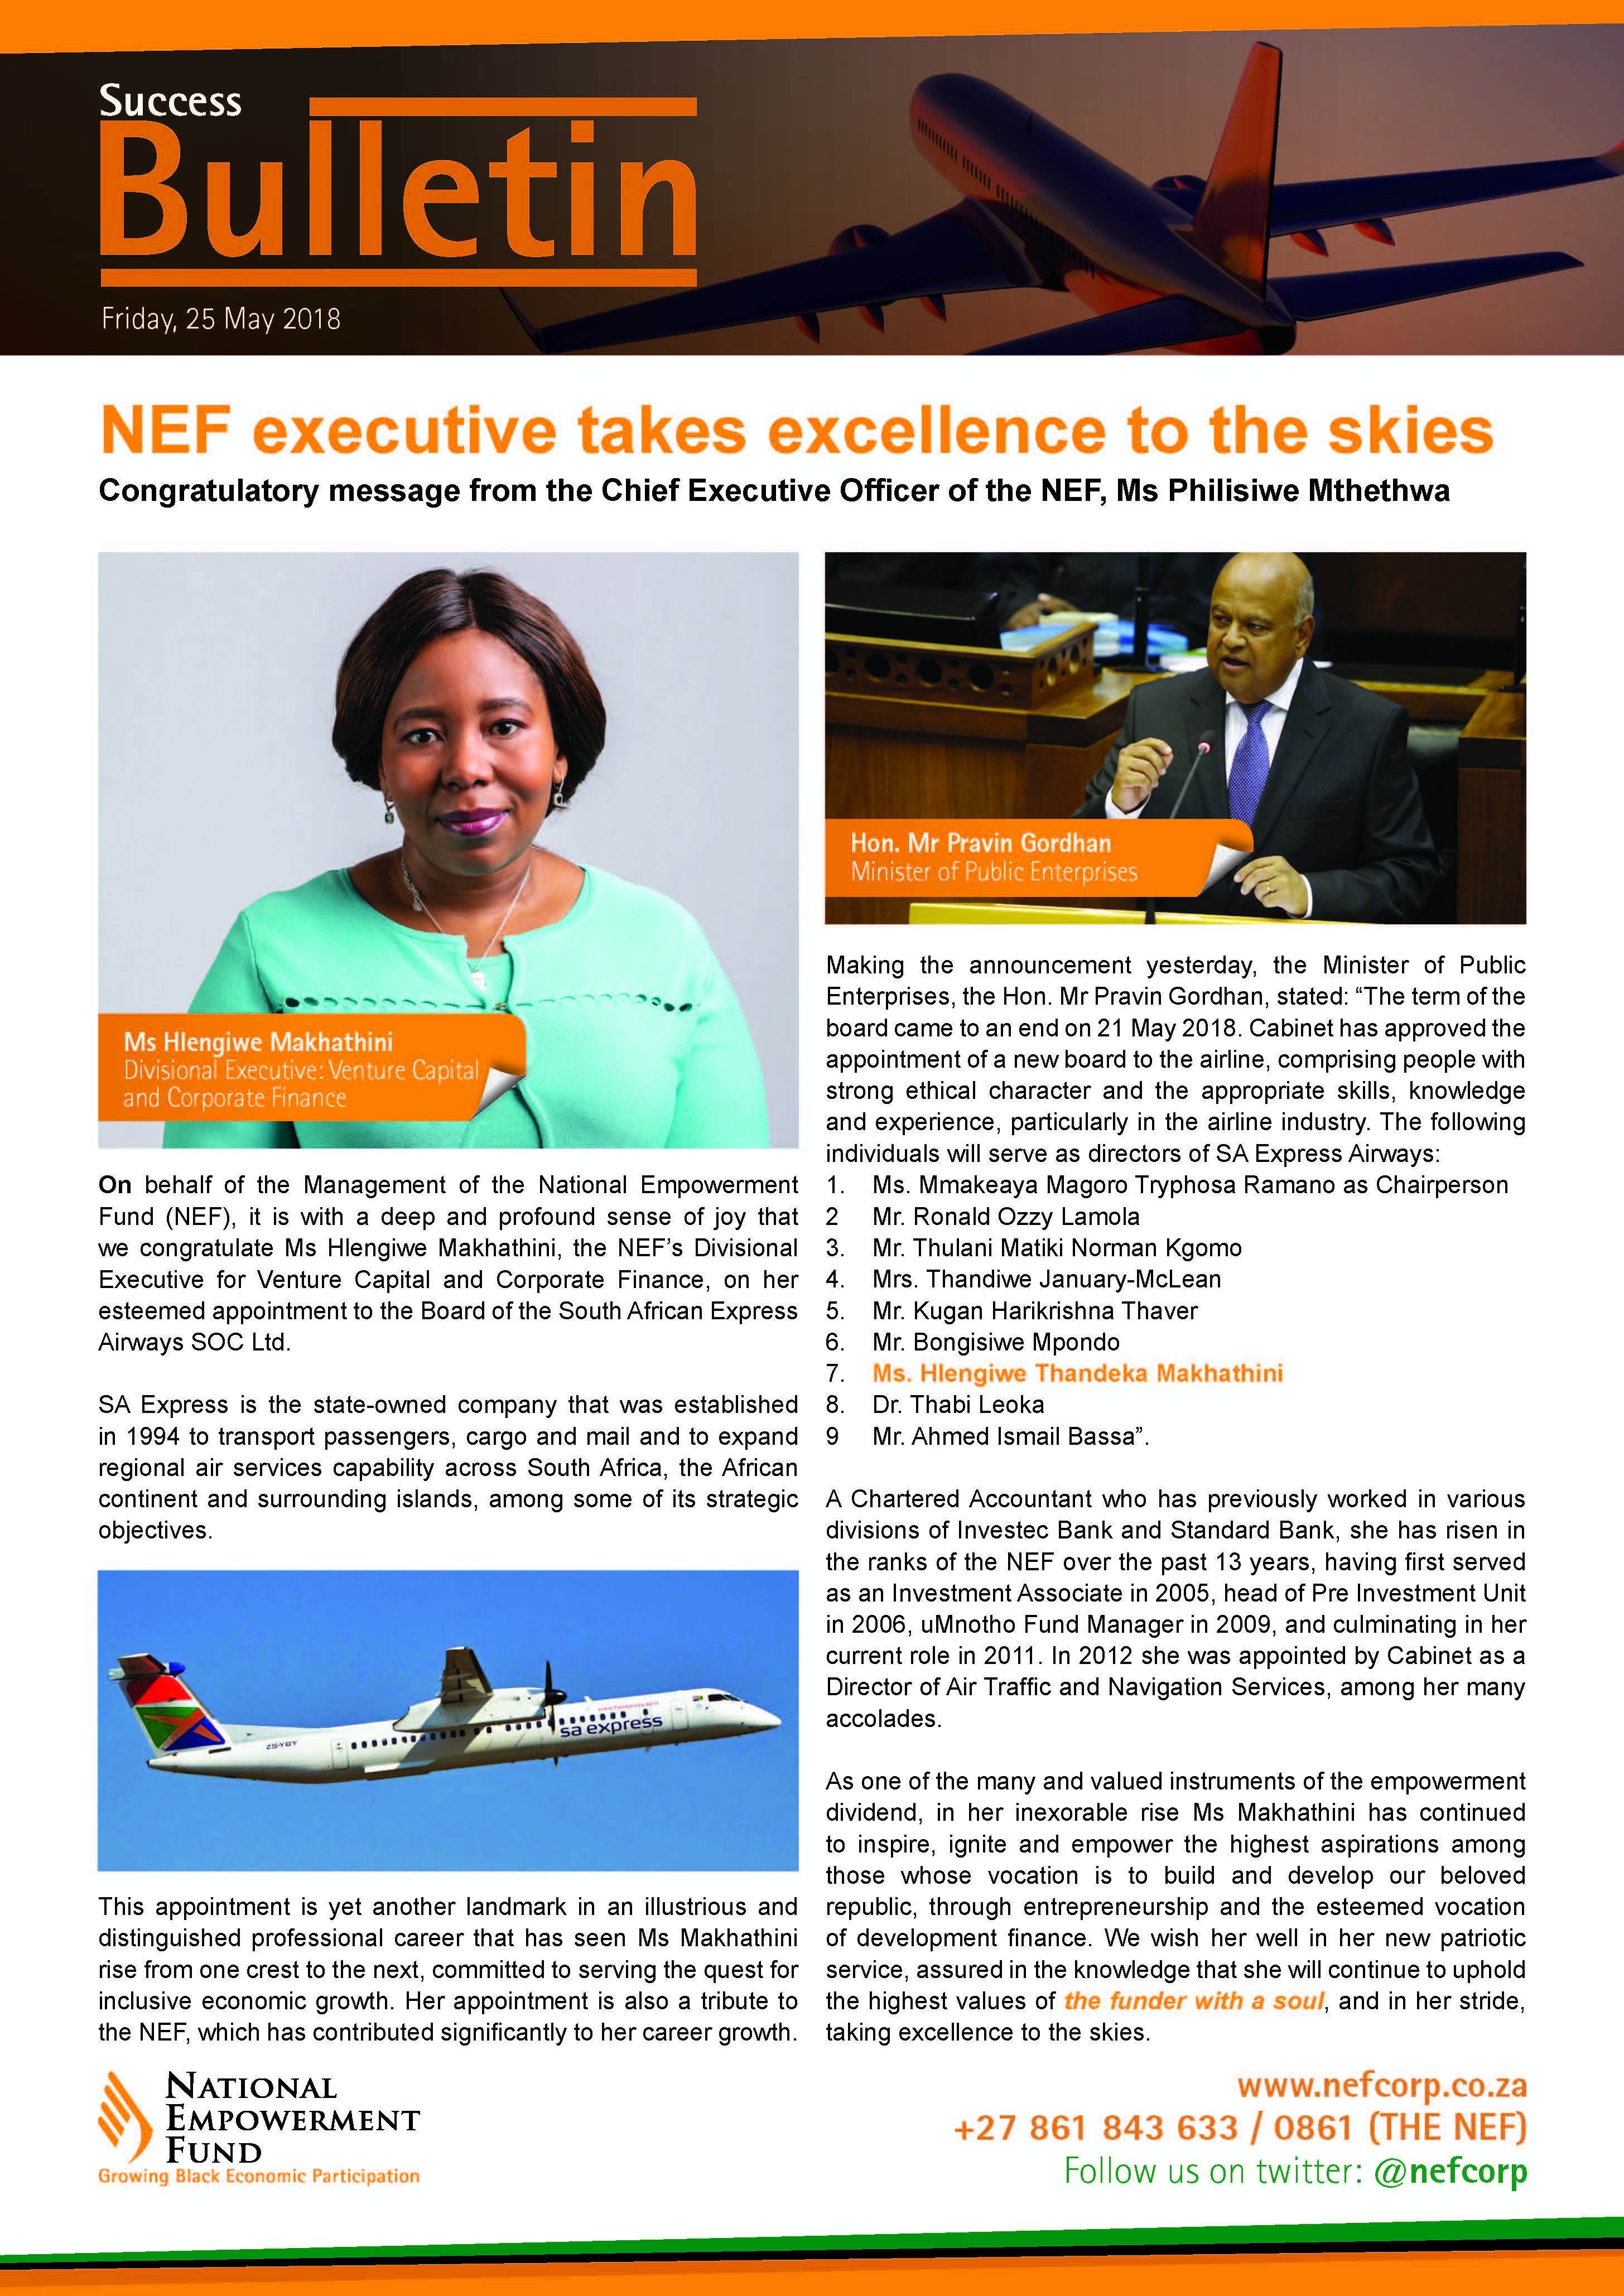 NEF Executive Takes Excellence To The Skies